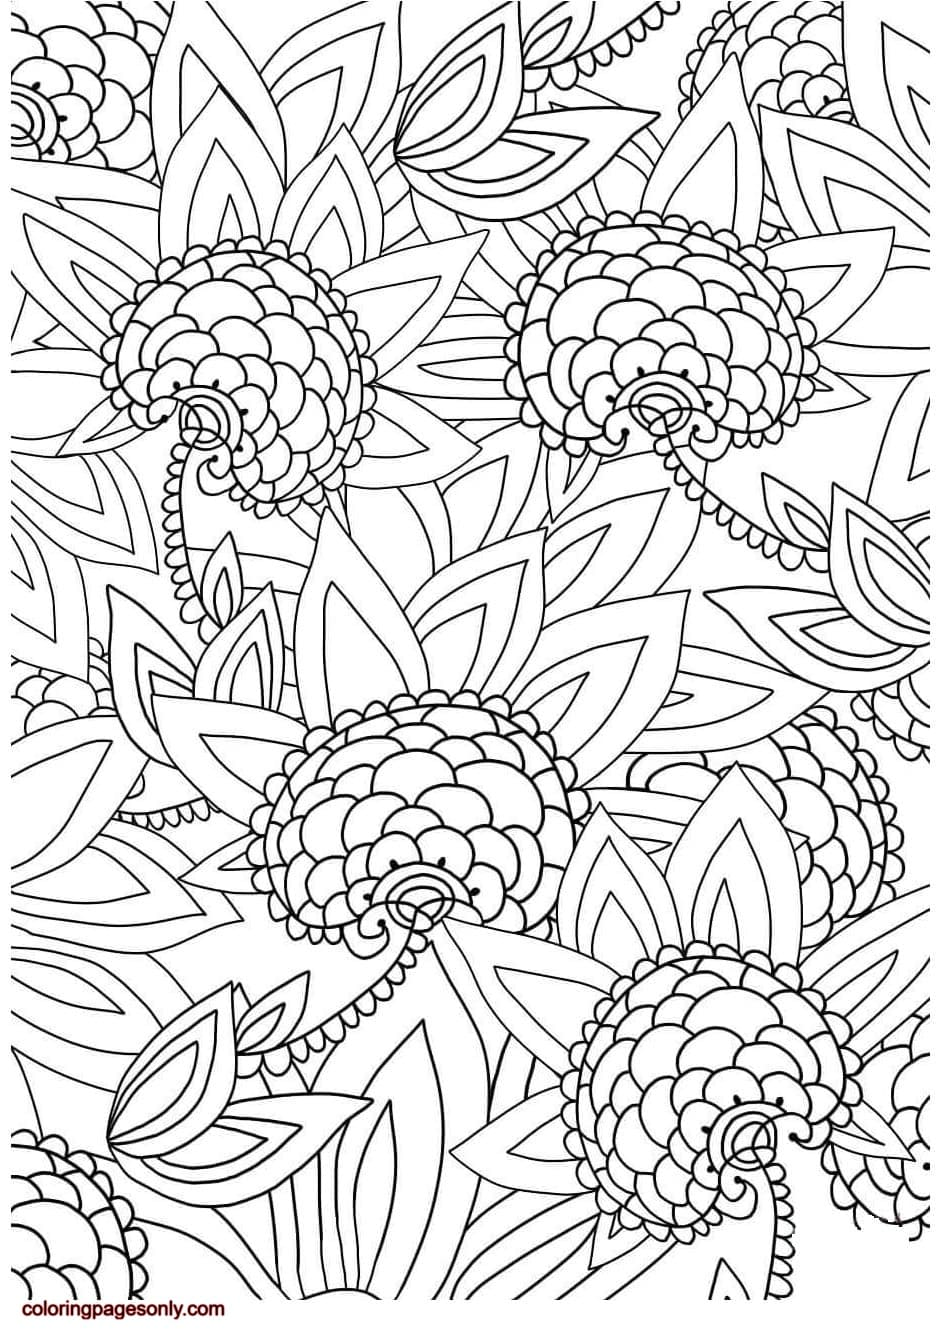 Floral Pattern 3 Coloring Page